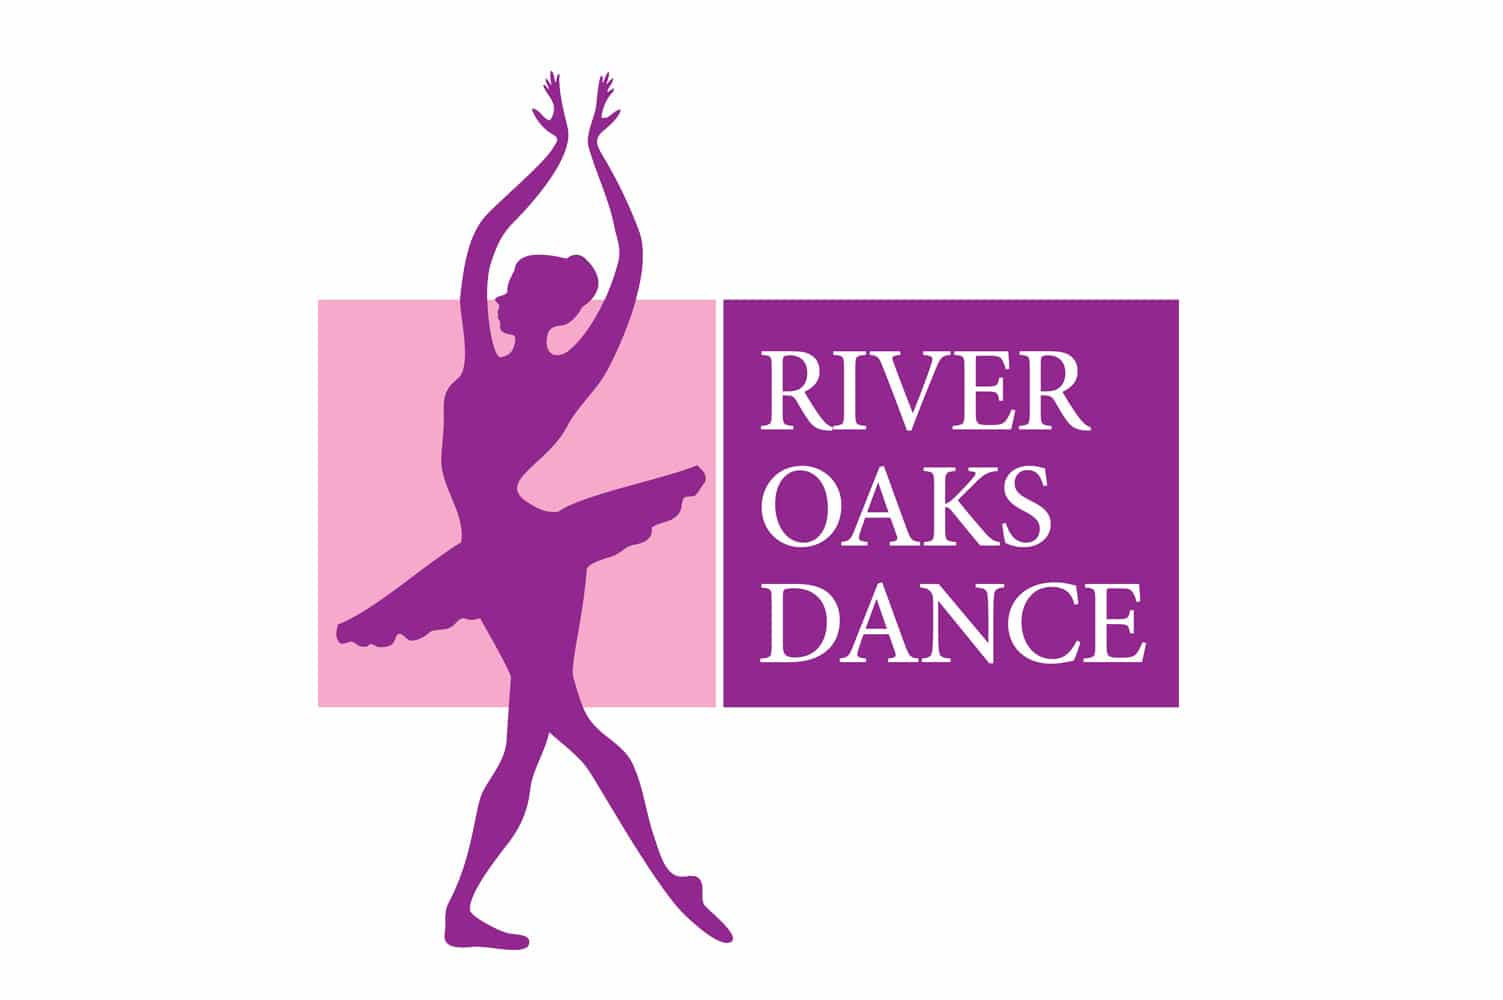 river-oaks-dance-logo-design